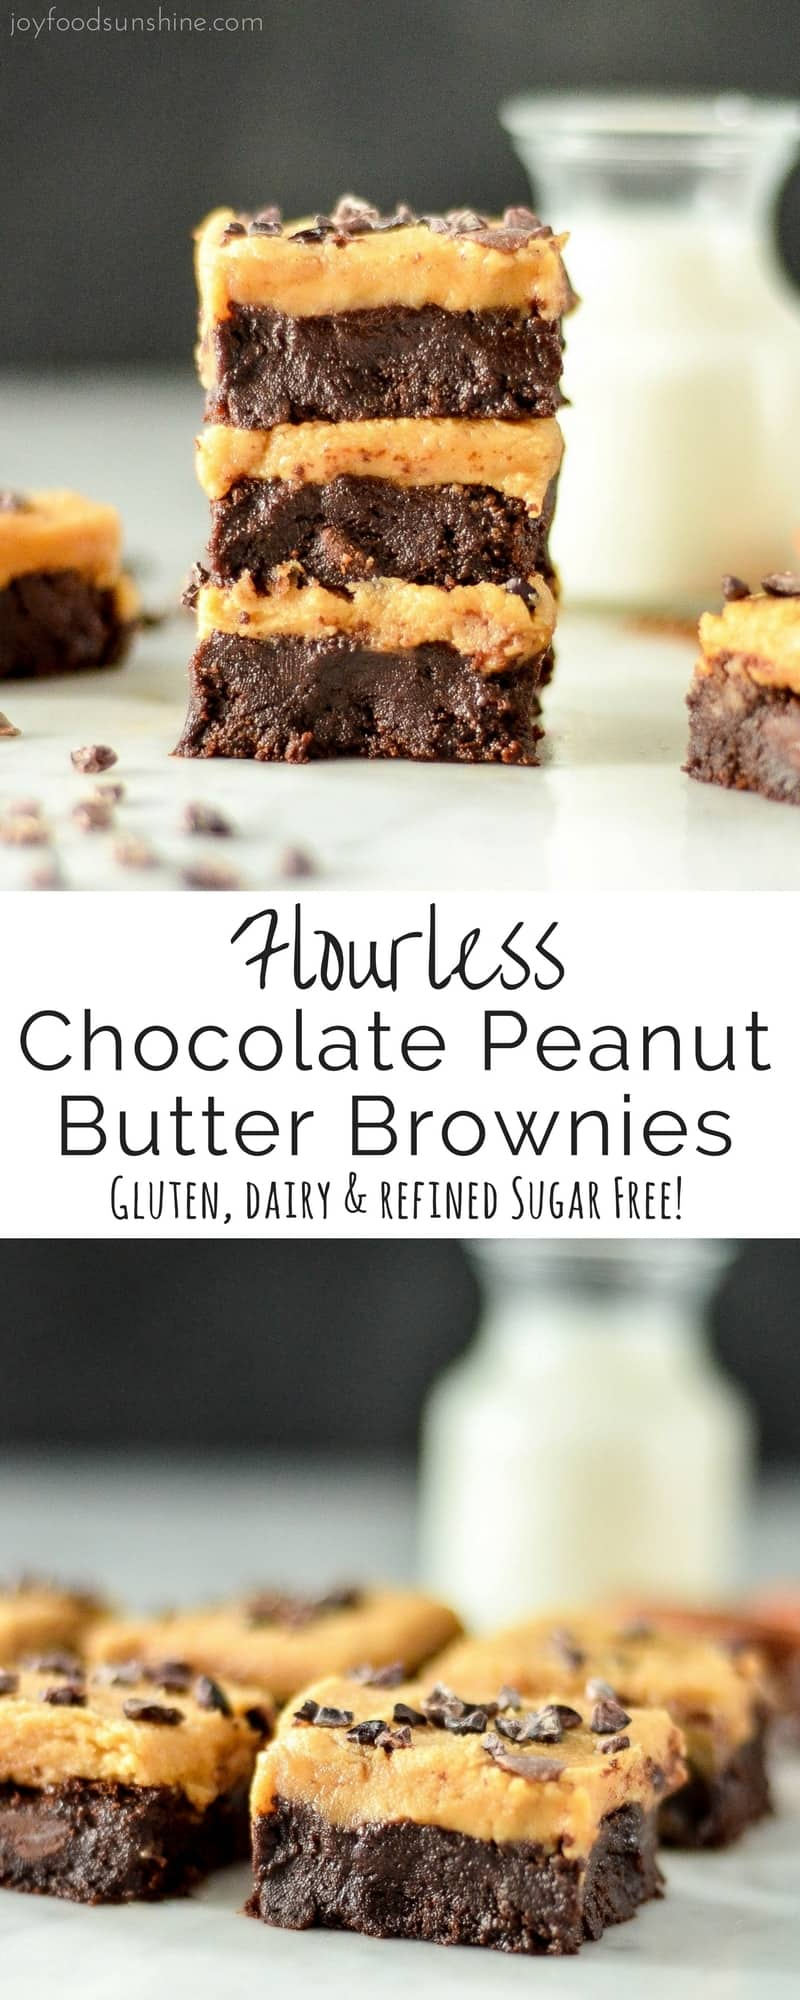 These Flourless Chocolate Peanut Butter Brownies are made with only 9 ingredients that you probably already have in your pantry! They're ultra fudgy, super gooey and irresistibly chocolatey! Plus they're gluten-free, dairy-free and refined sugar free! The perfect healthier dessert for chocolate peanut butter lovers!